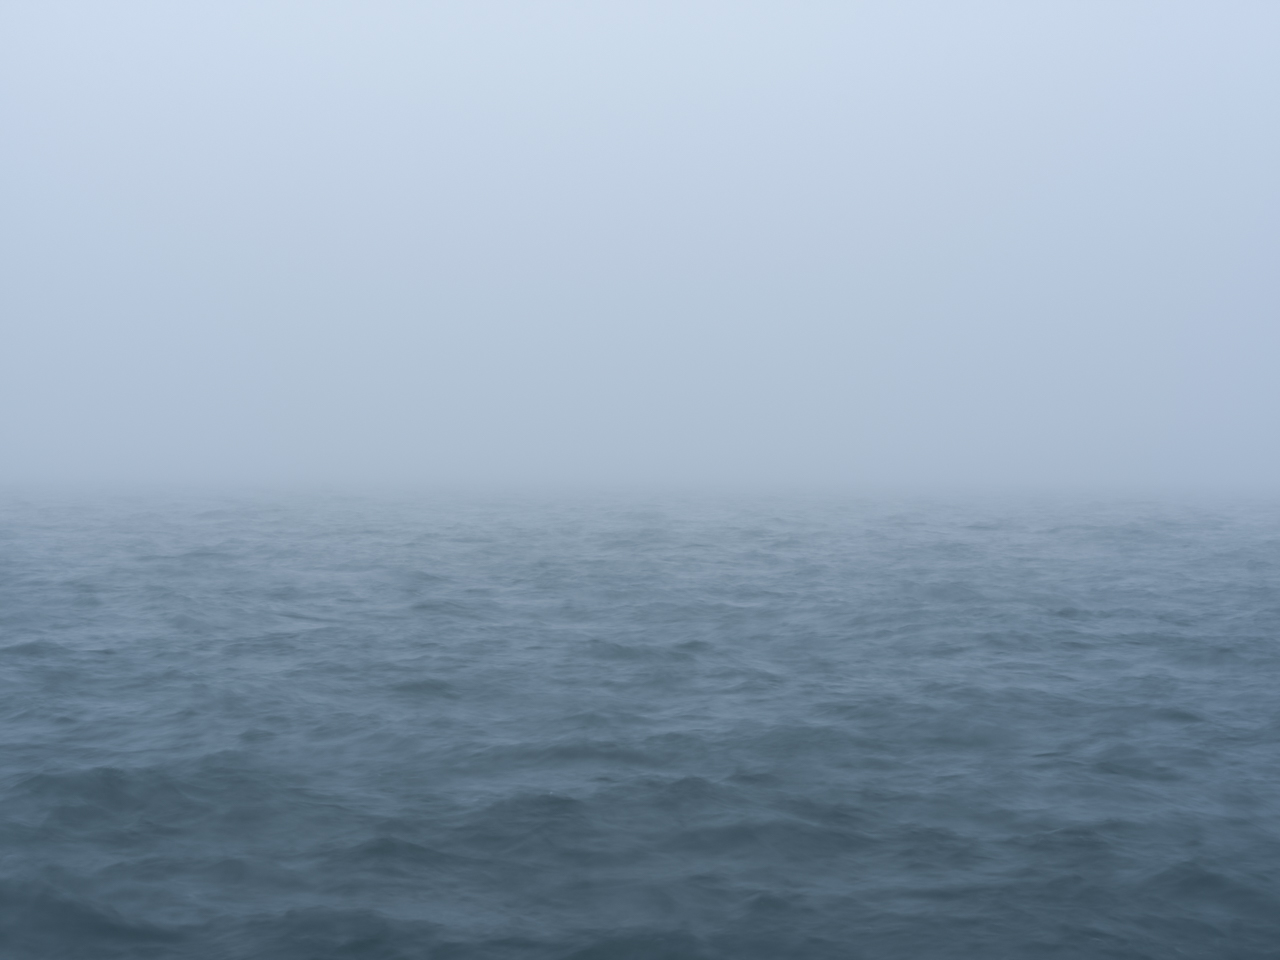 a heavy fog lies over the lake which is a particular color of blue